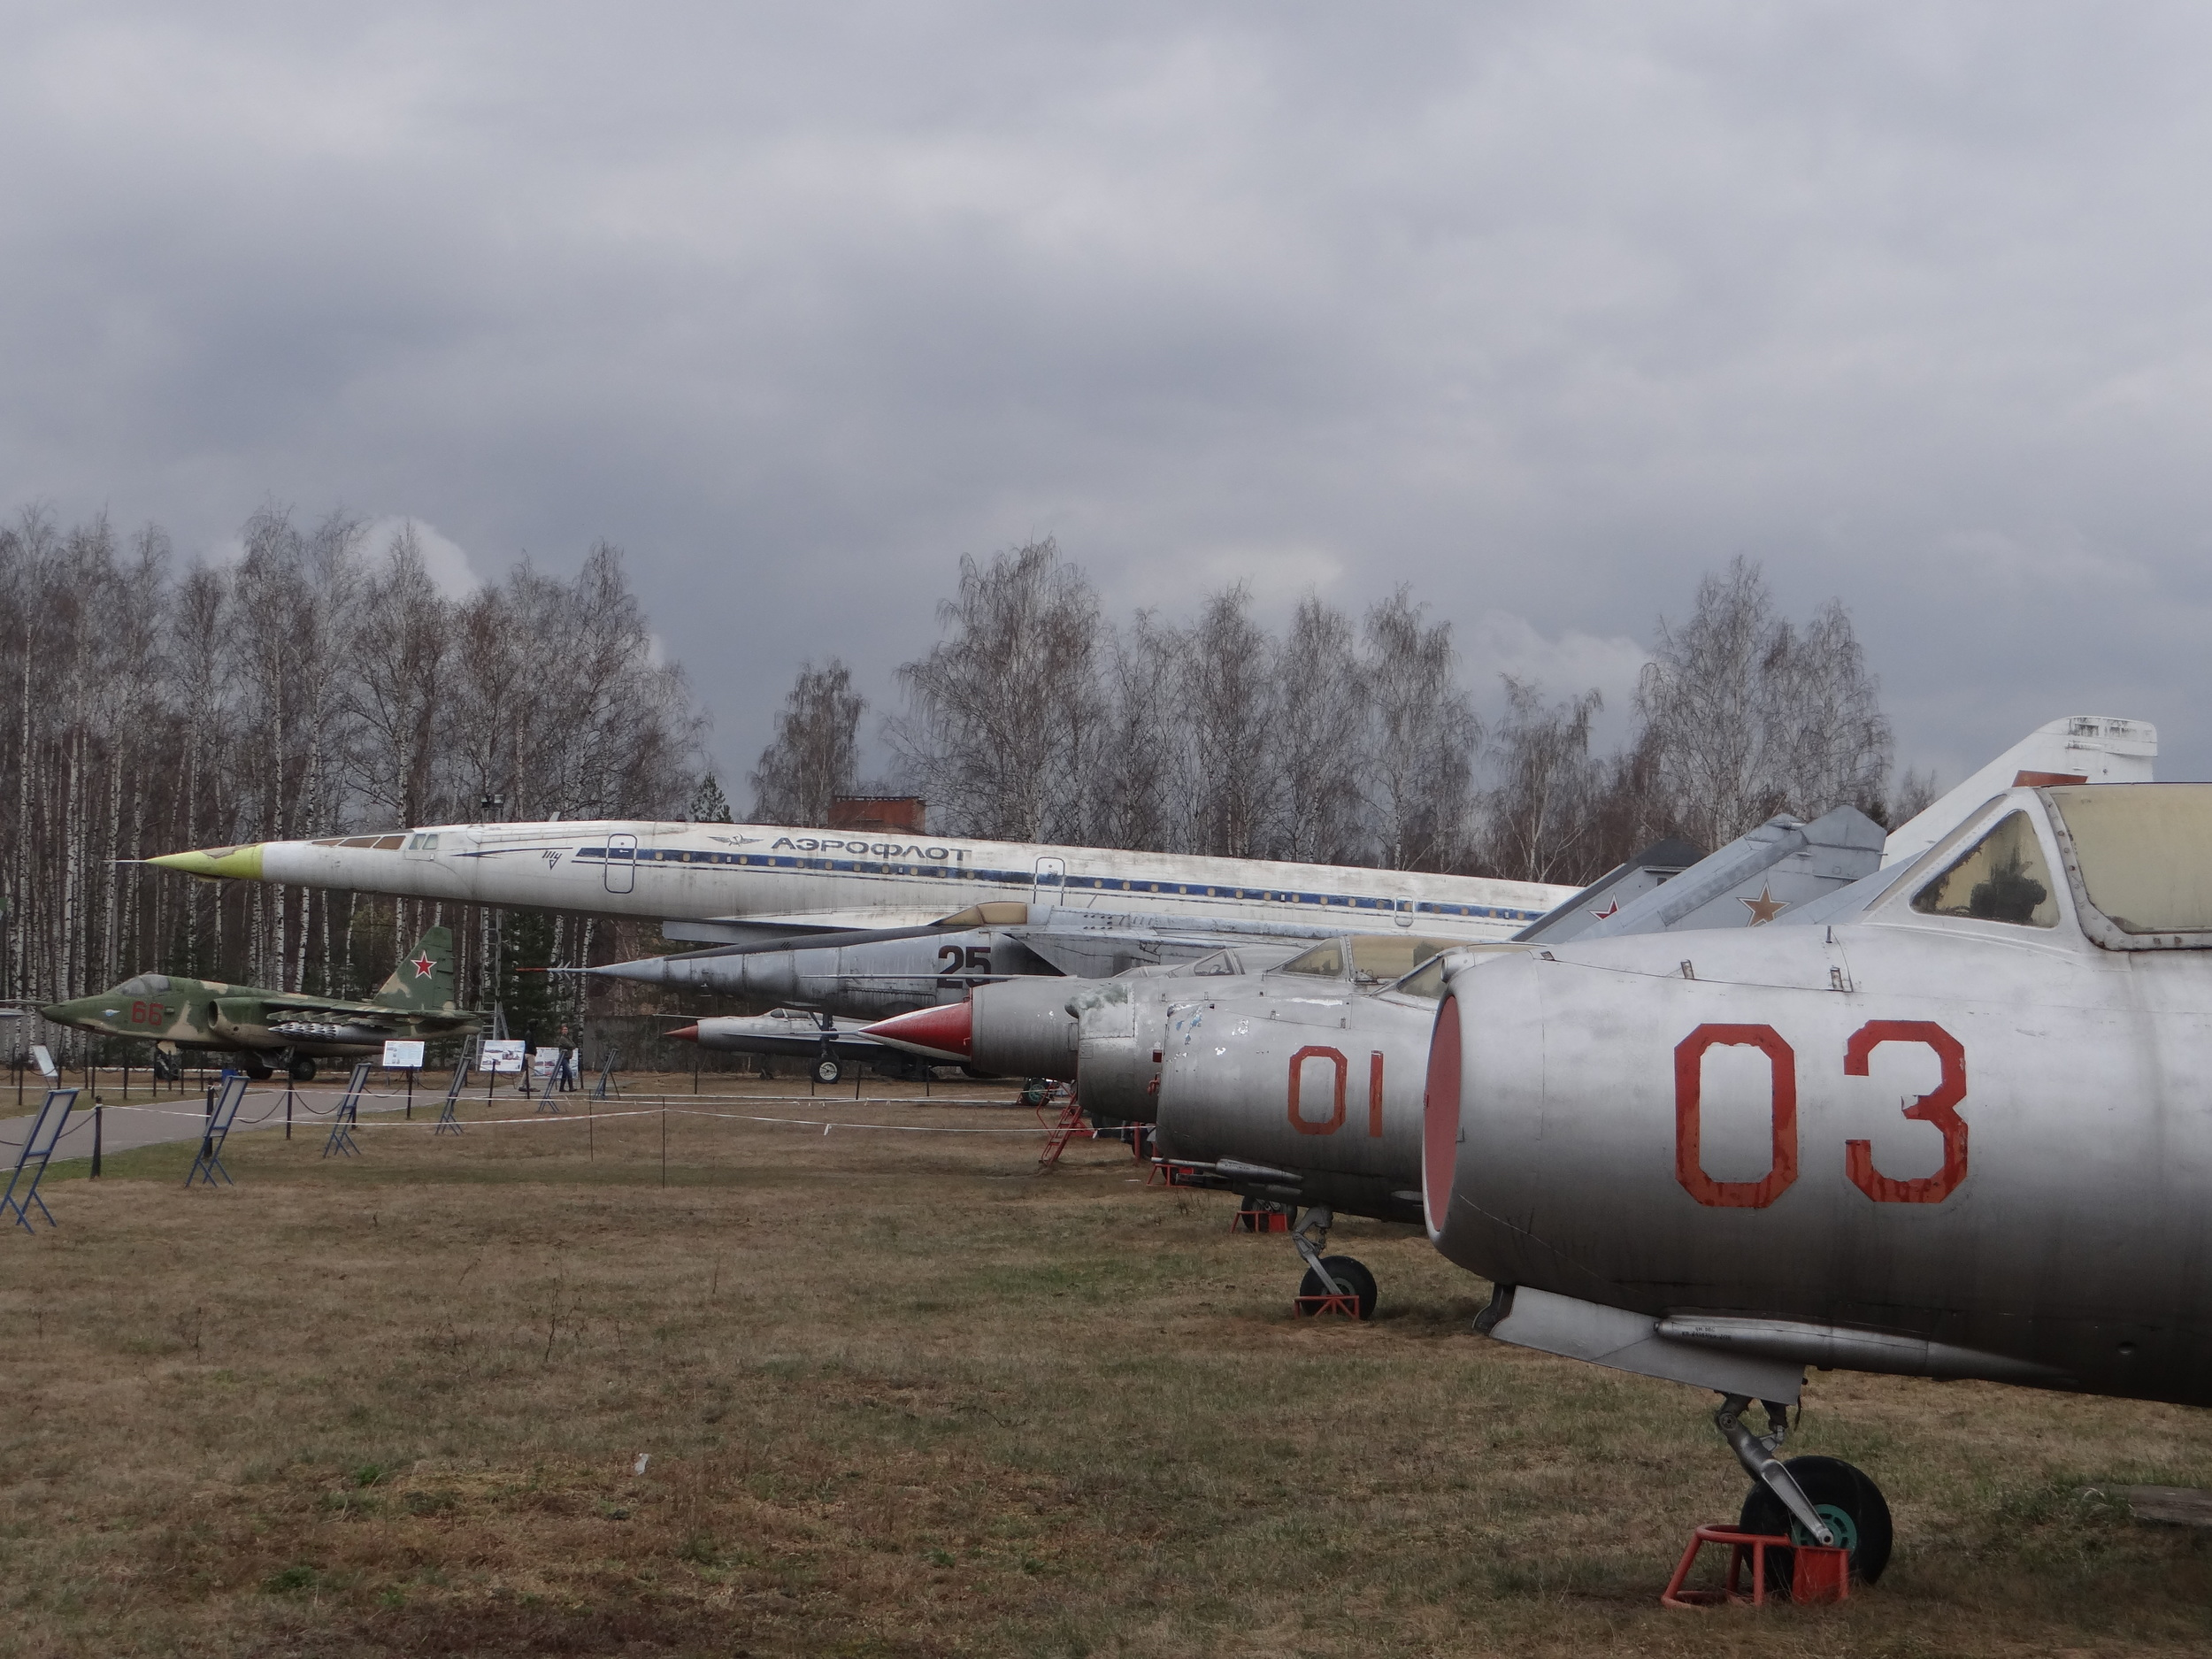 A contest of noses: easy victory for the Tupolev Tu-144